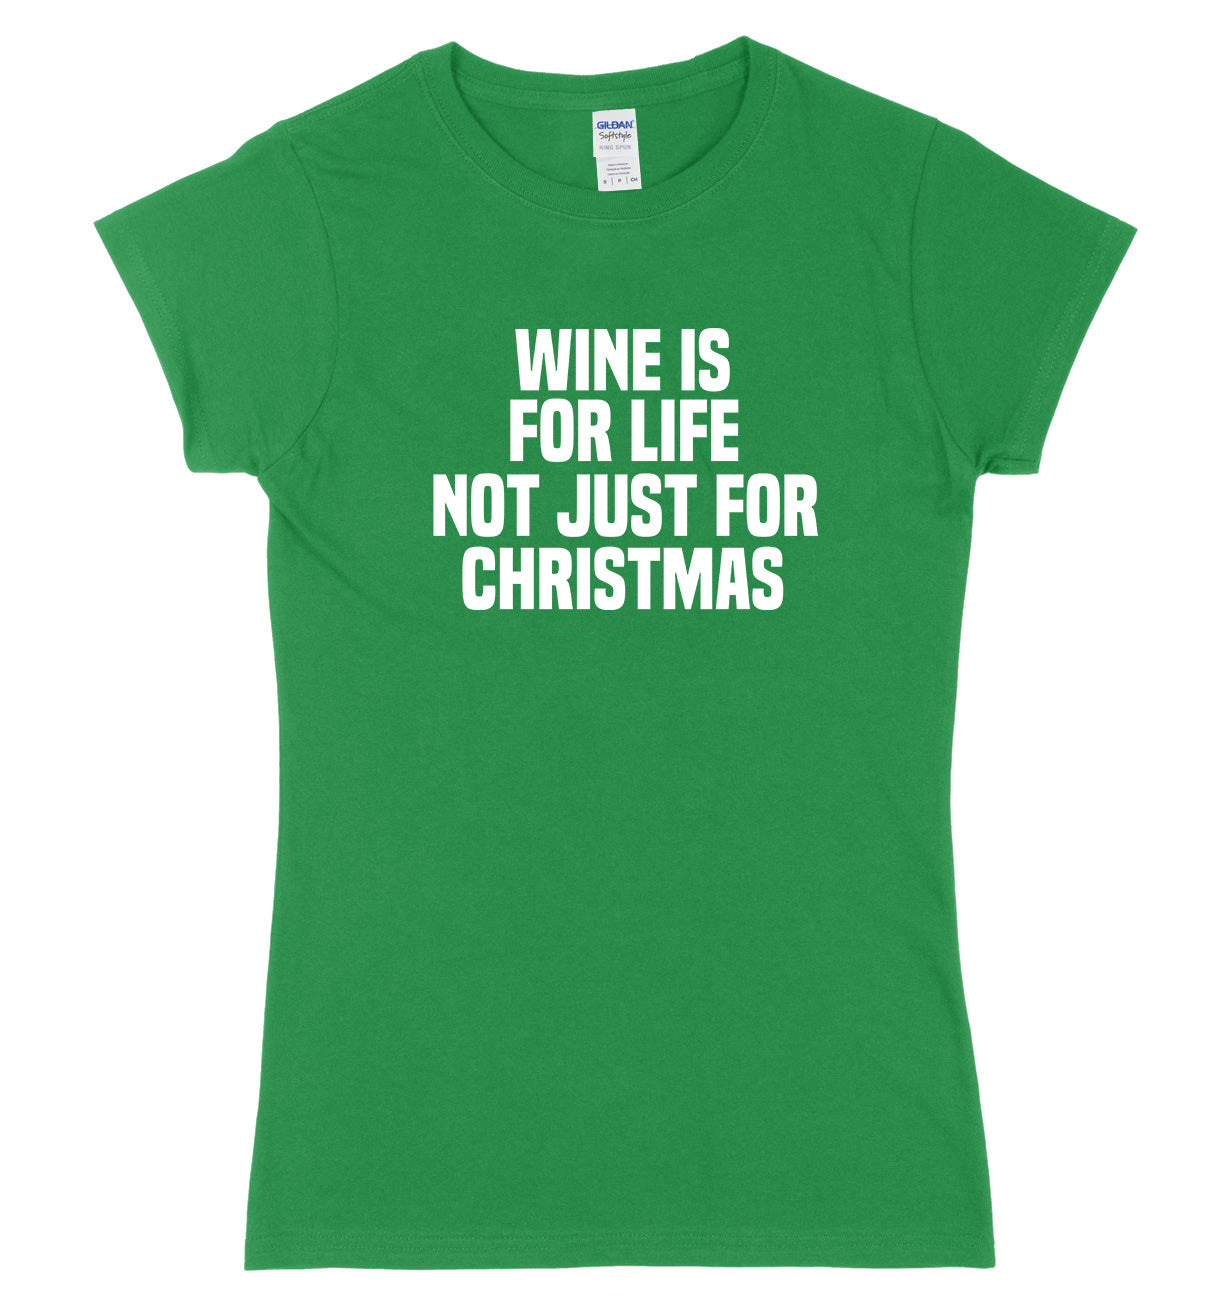 Wine Is For Life Not Just For Christmas Womens Ladies Slim Fit Christmas T-Shirt